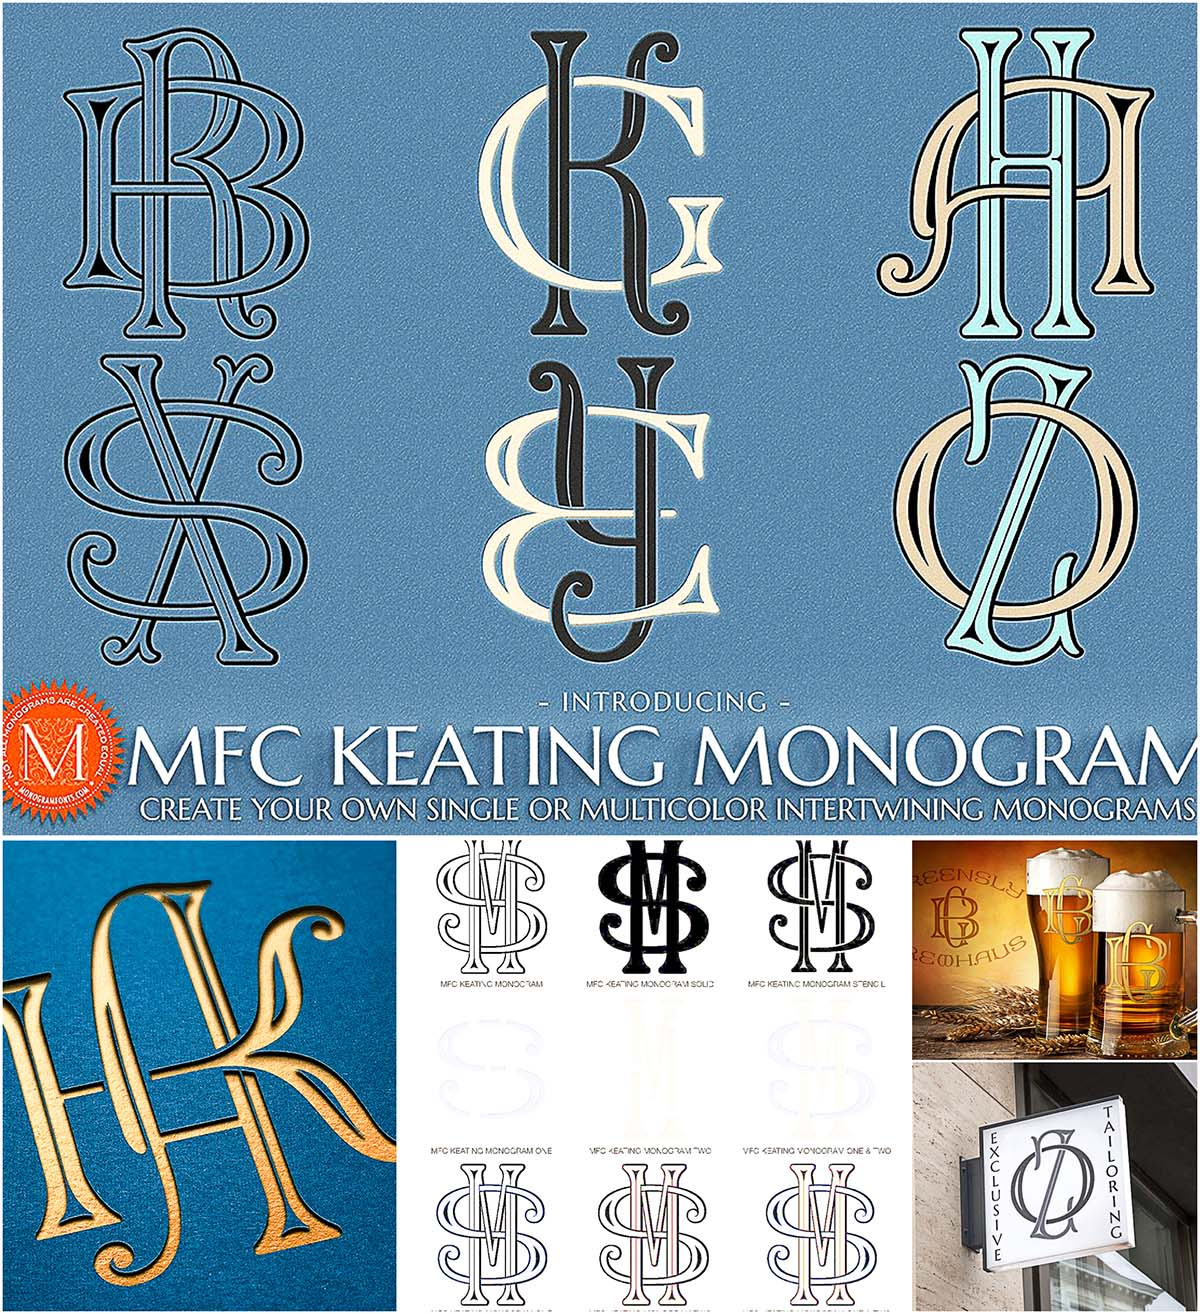 Keating monogram